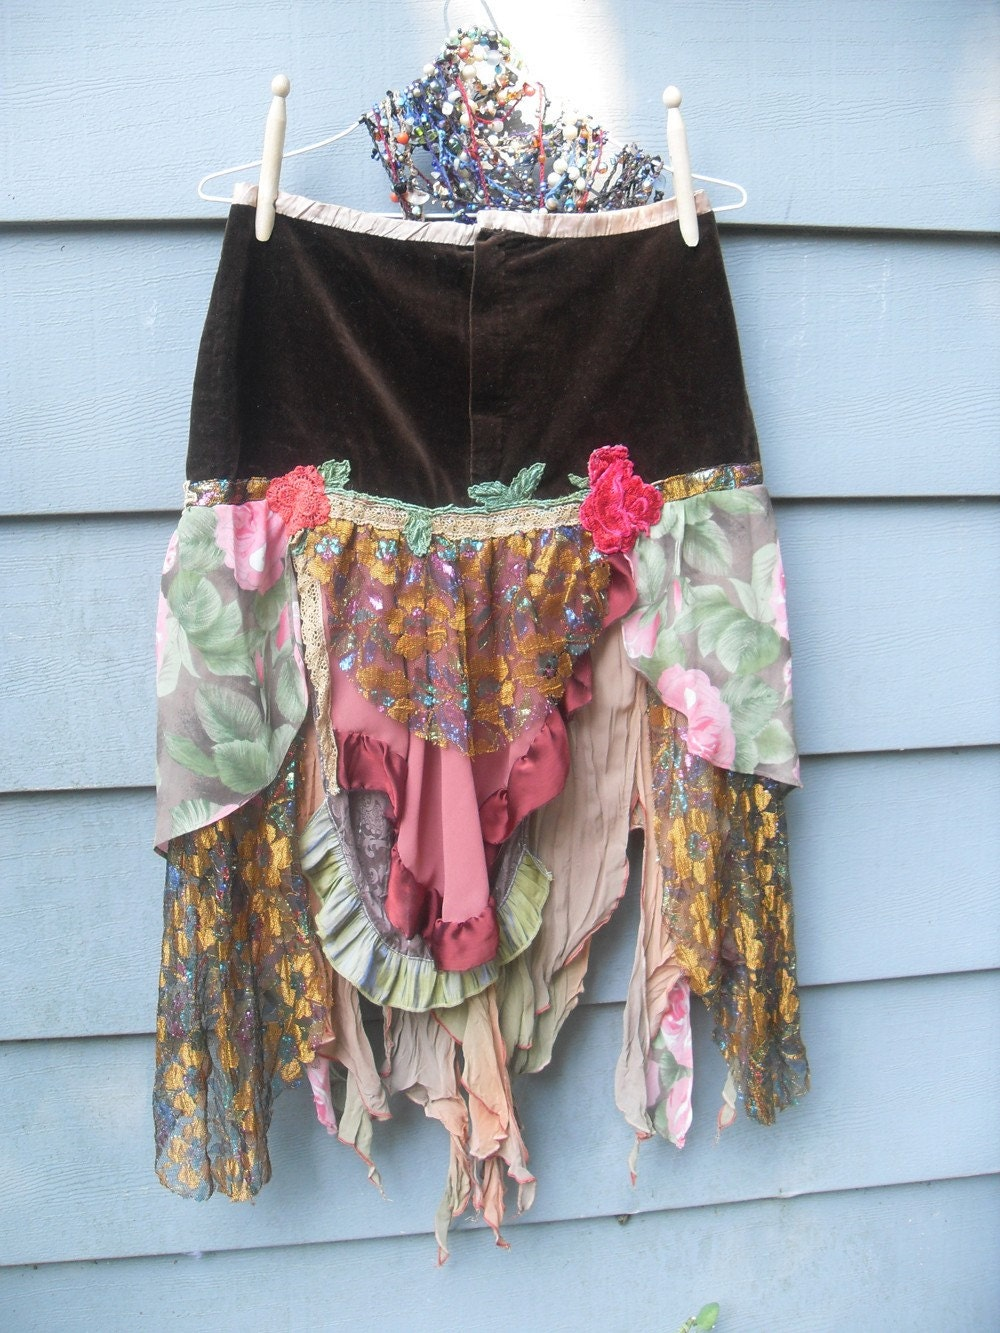 Autumn Rose Gypsy Skirt Upcycled Vintage Boho by SalvationScraps from etsy.com